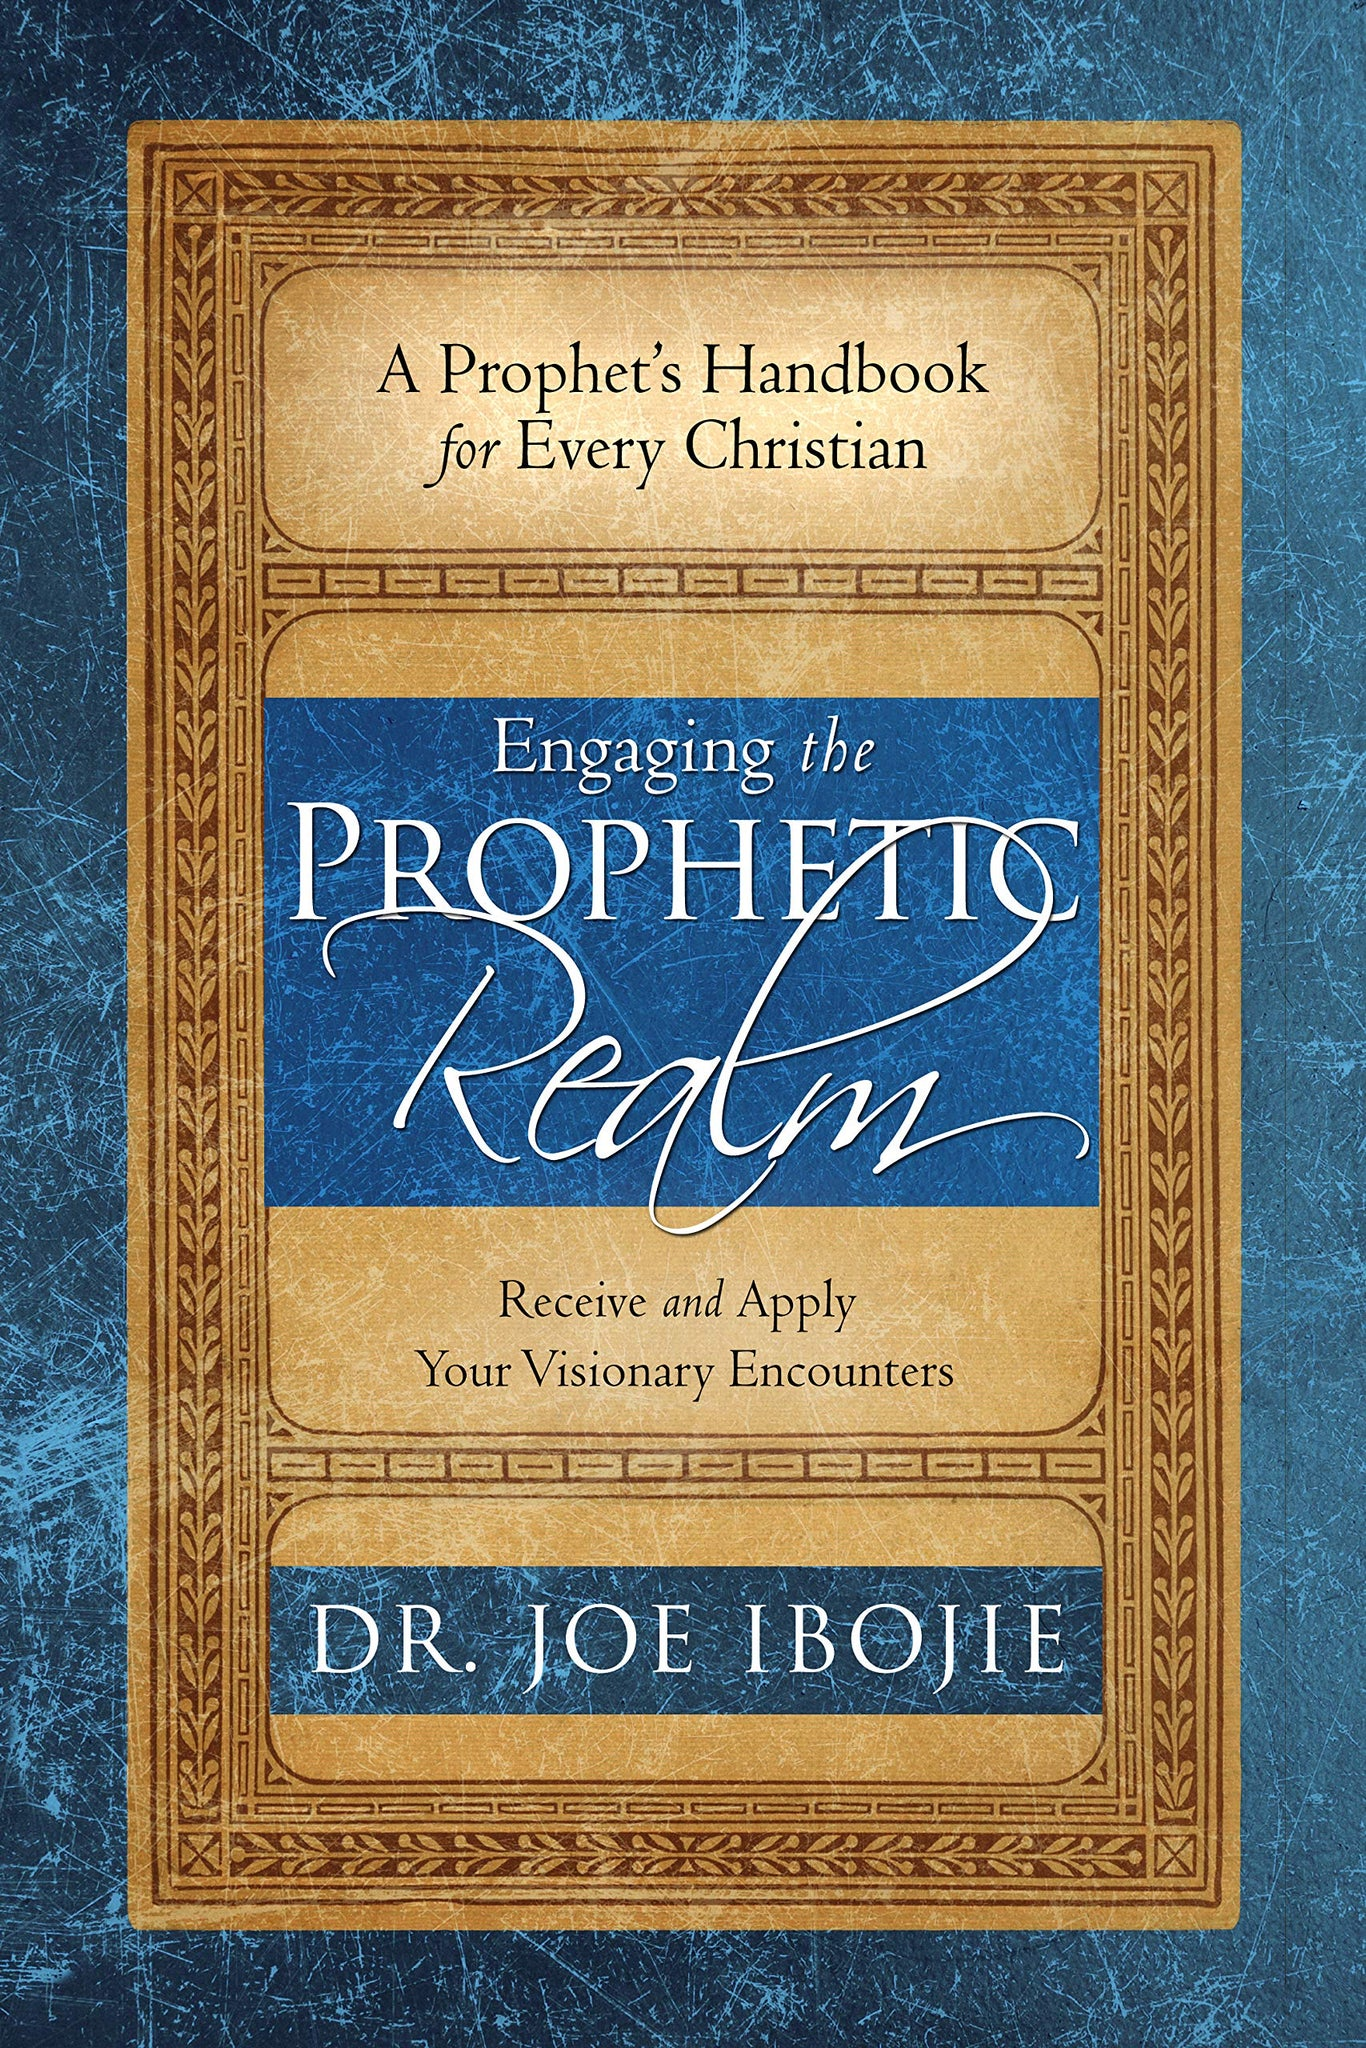 Engaging the Prophetic Realm: Receive and Apply Your Visionary Encounters